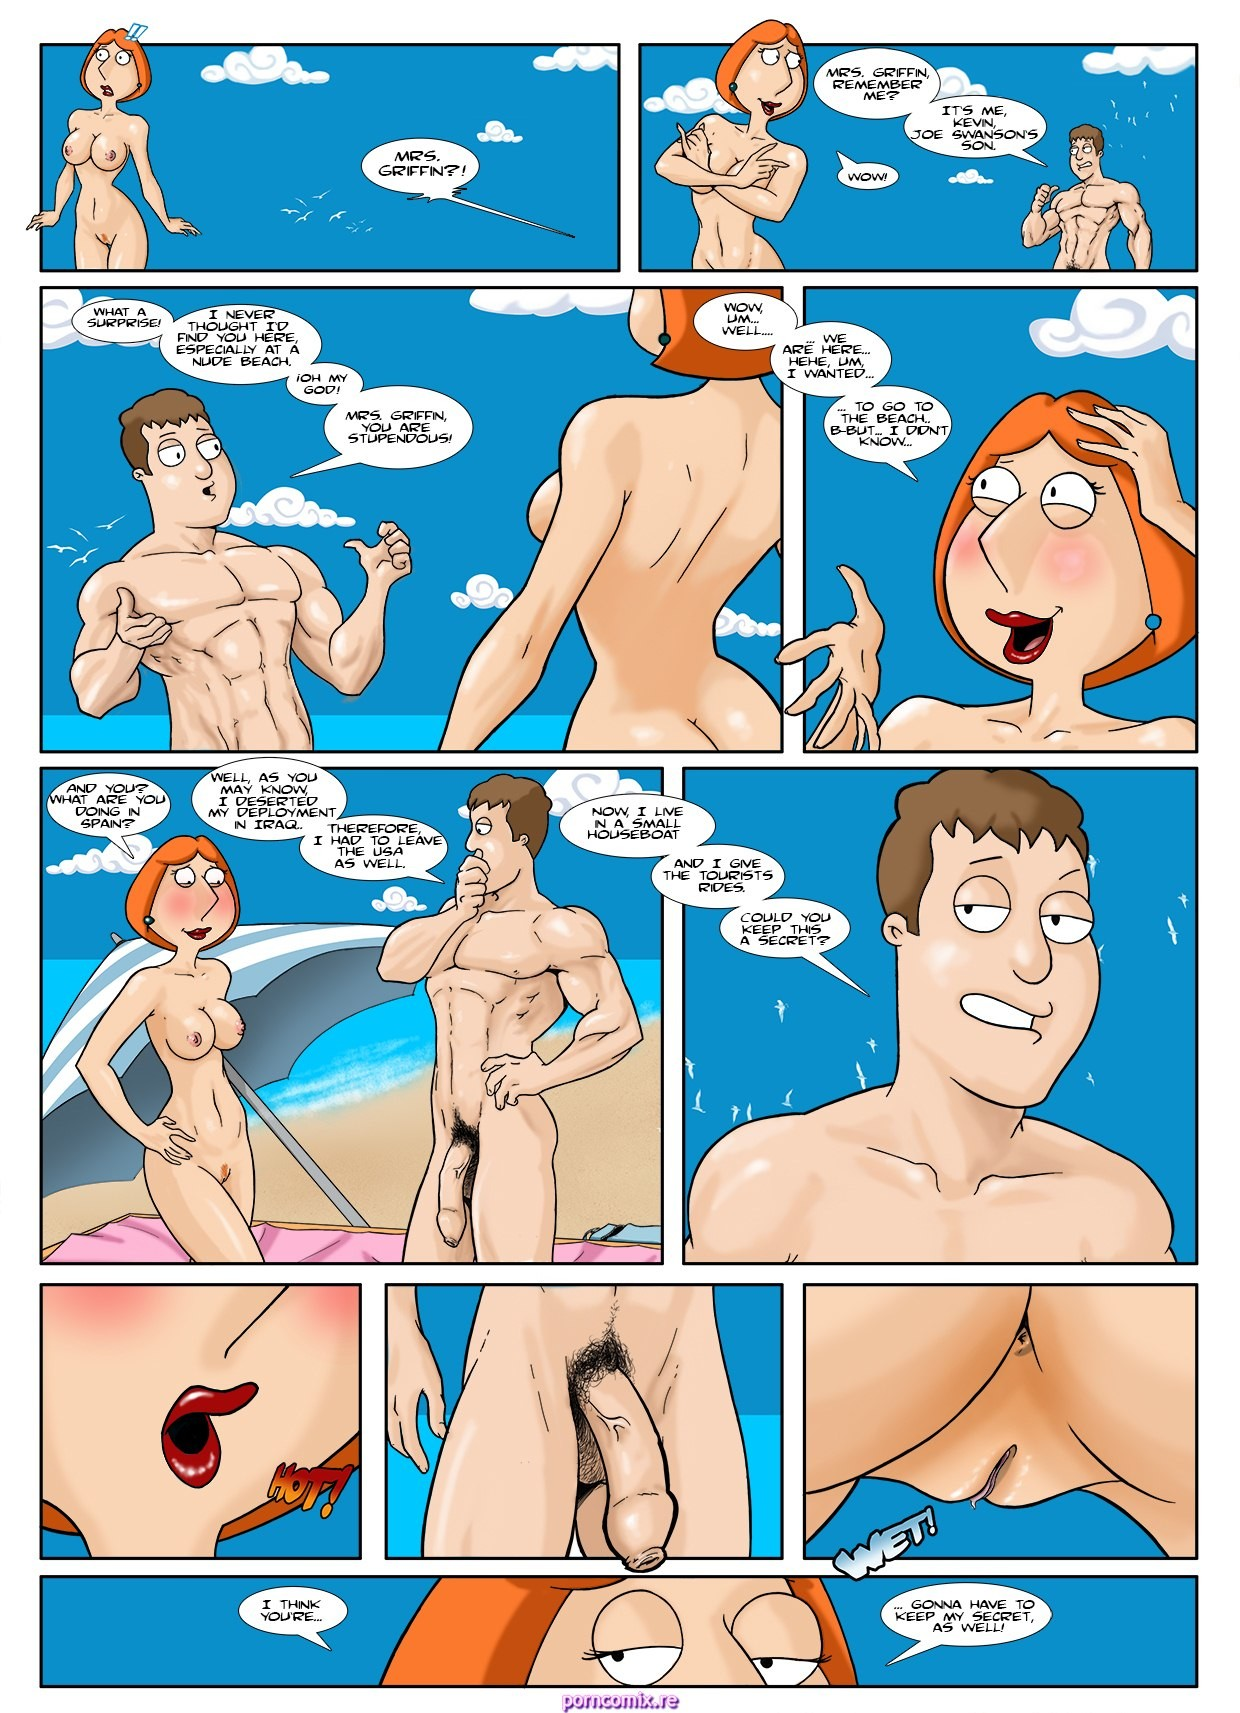 Nude Comic Porn kikebrikex- family guy holiday in spain- anal sex porn comic